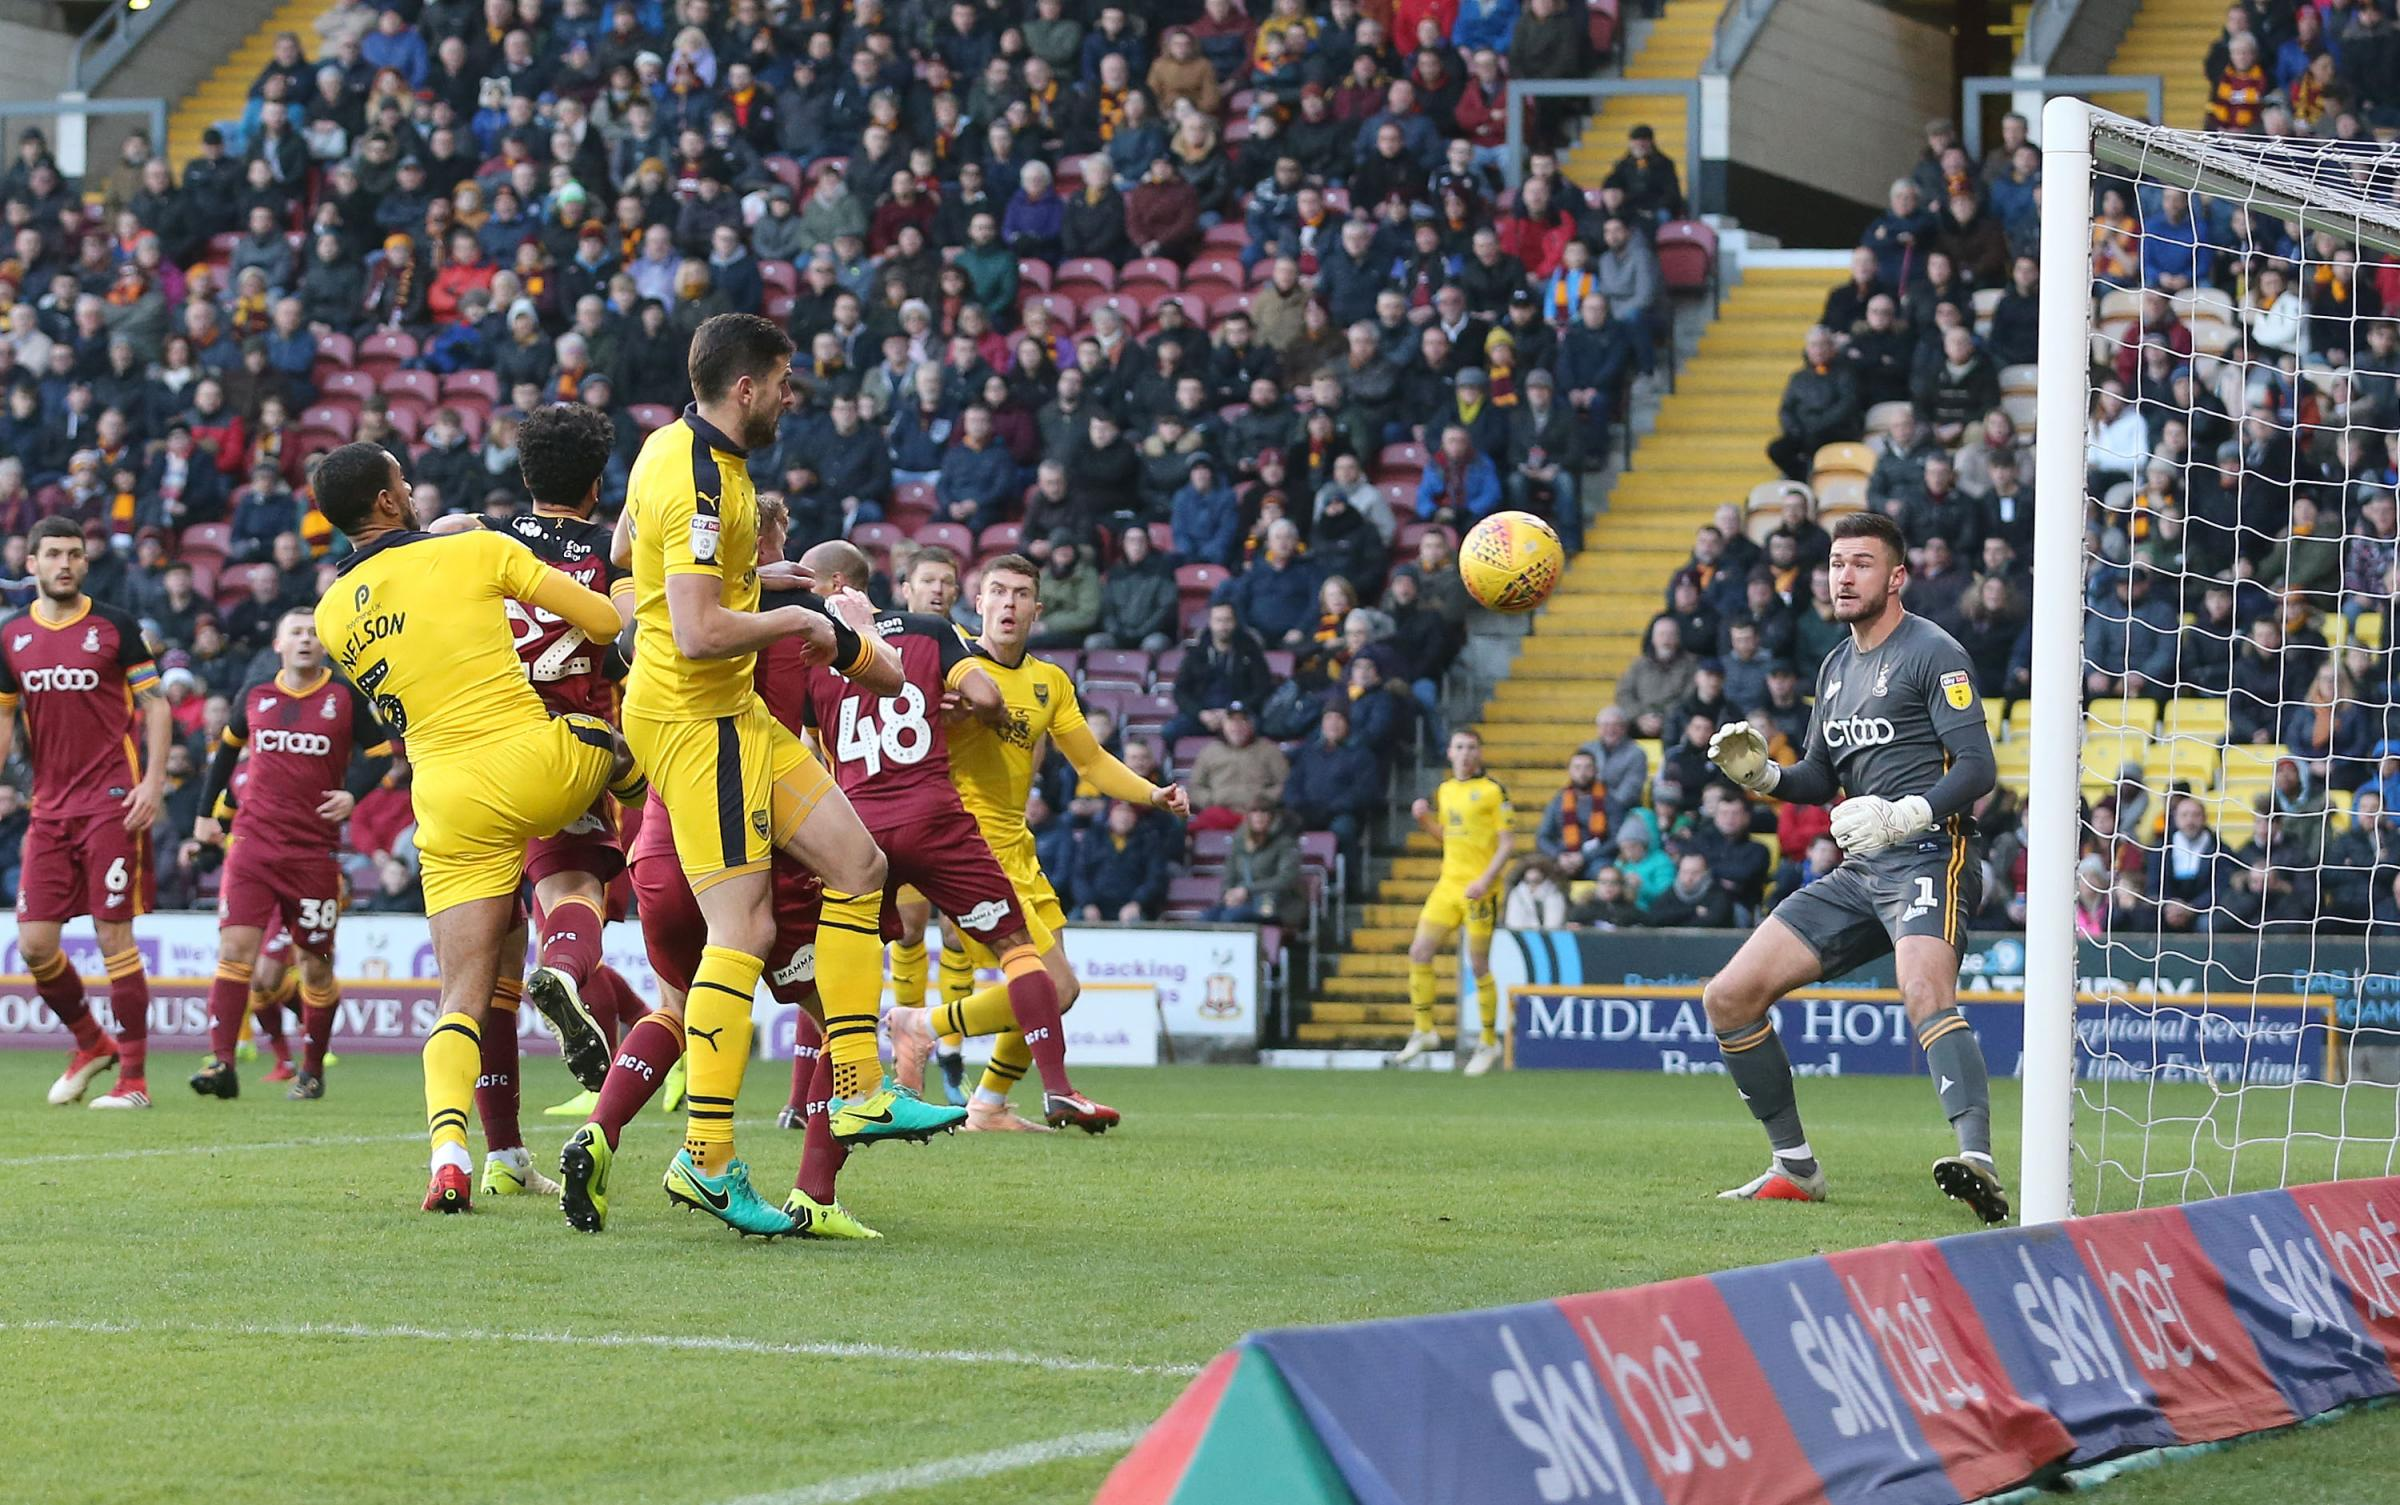 Curtis Nelson heads wide during Oxford United's 2-0 defeat at Bradford City in November Picture: Richard Parkes